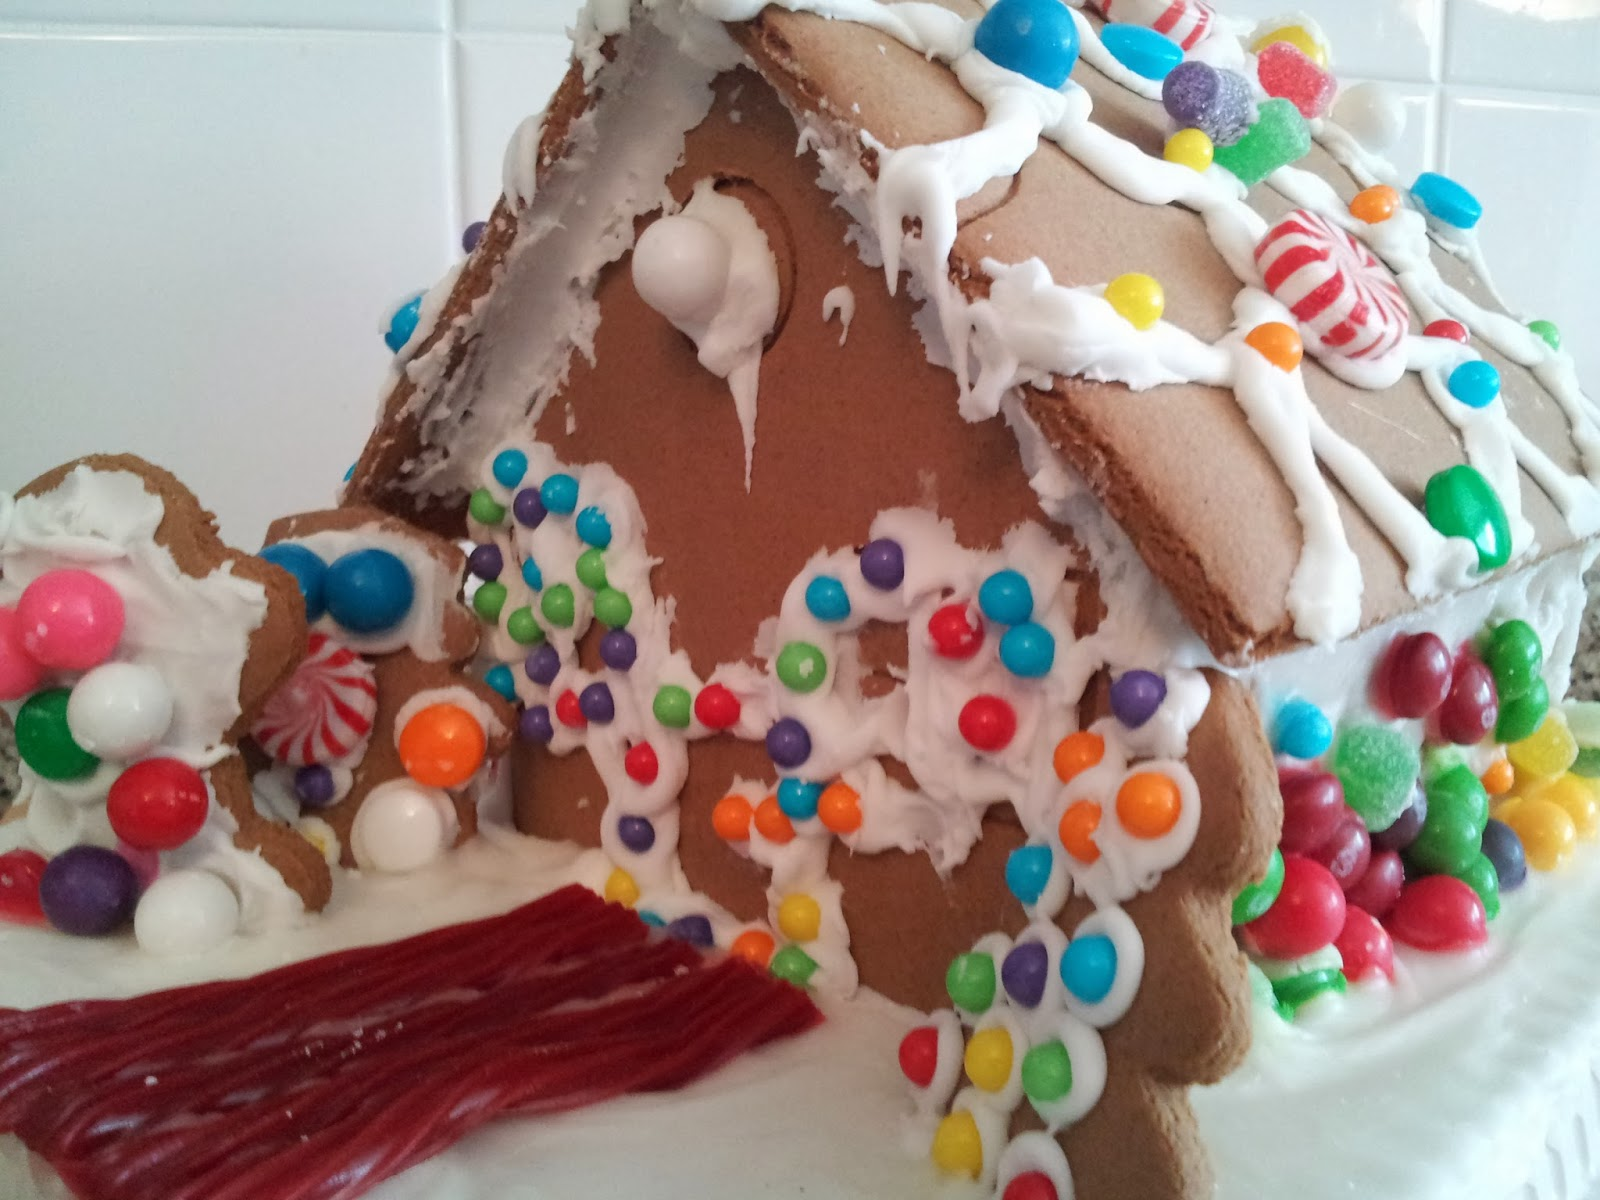 gingerbread house, Christmas, baking, candy